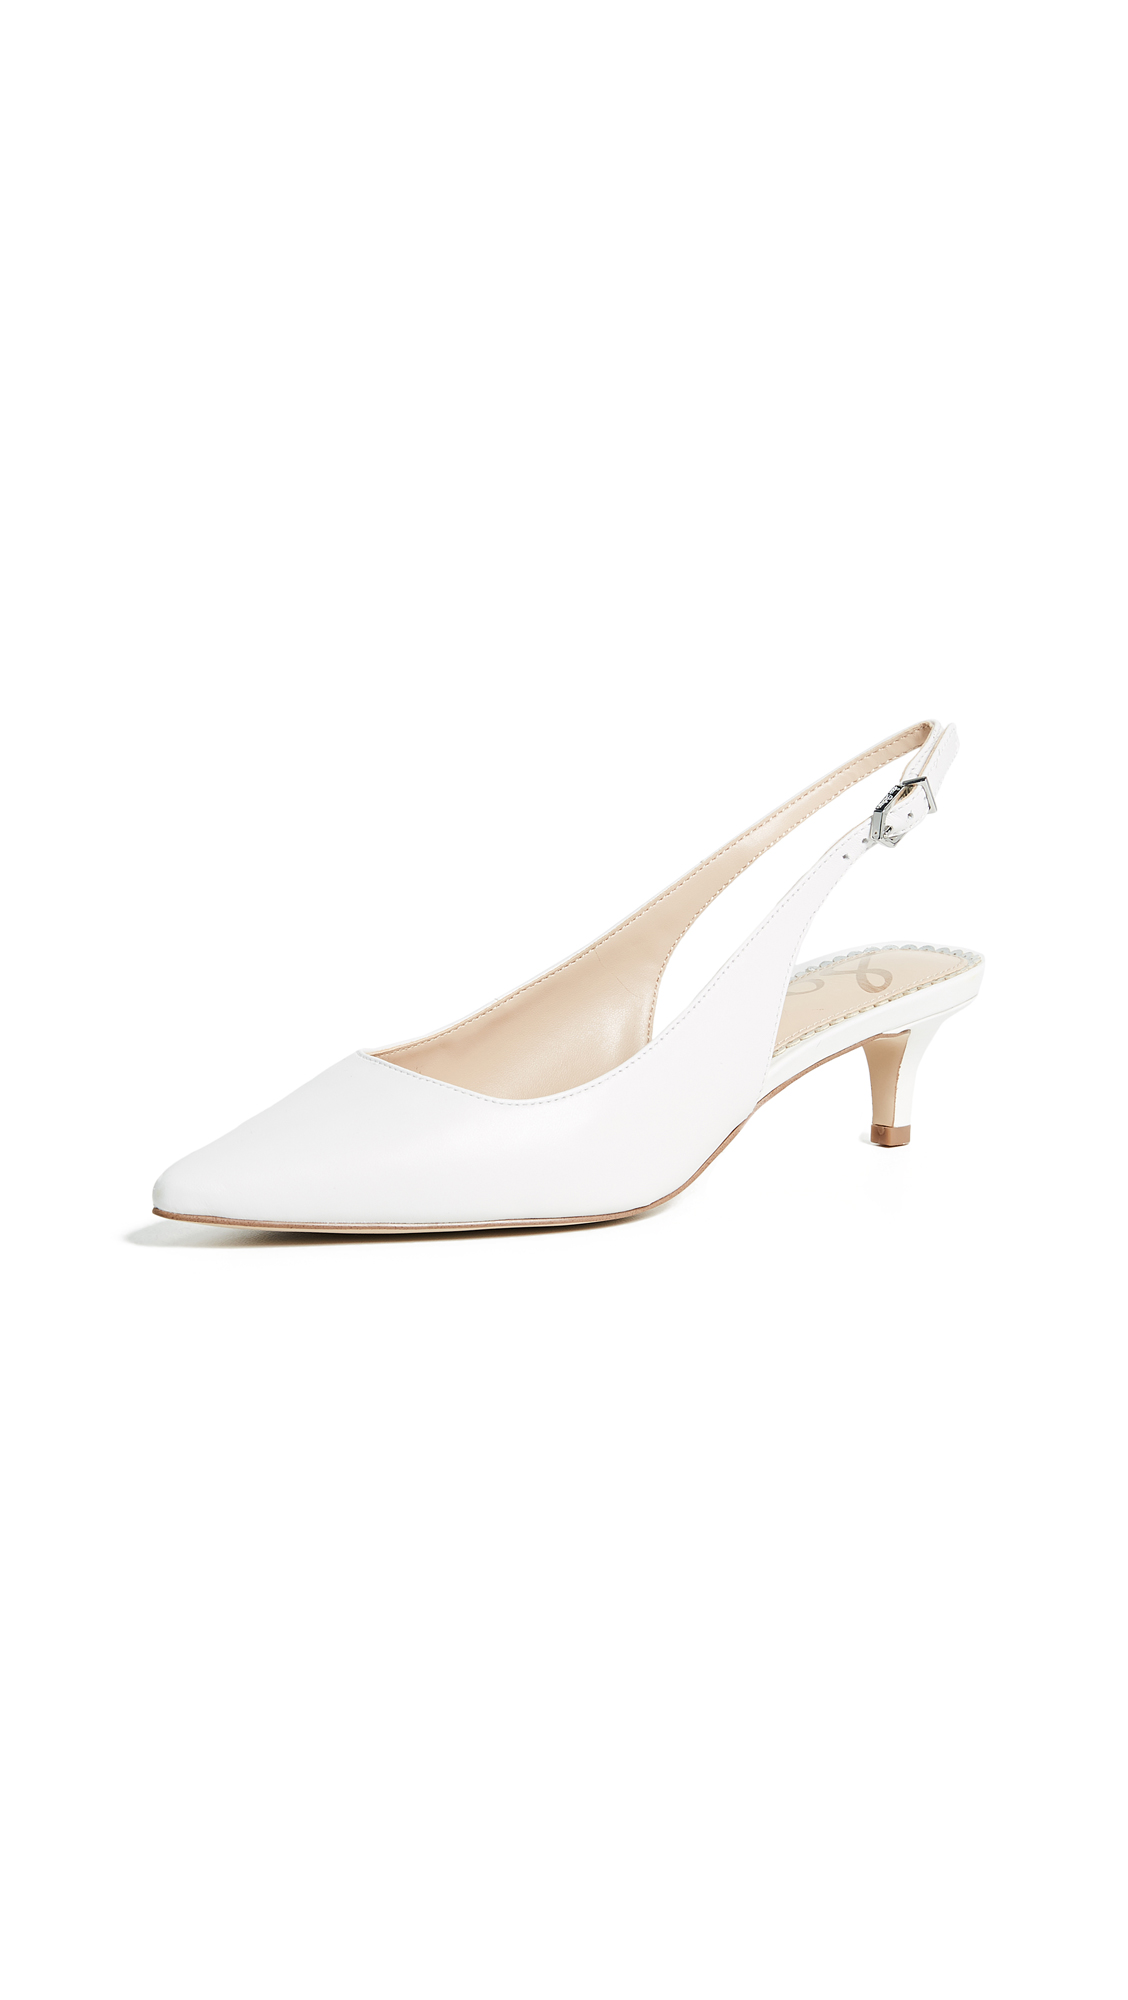 Sam Edelman Ludlow Slingback Pumps - Bright White